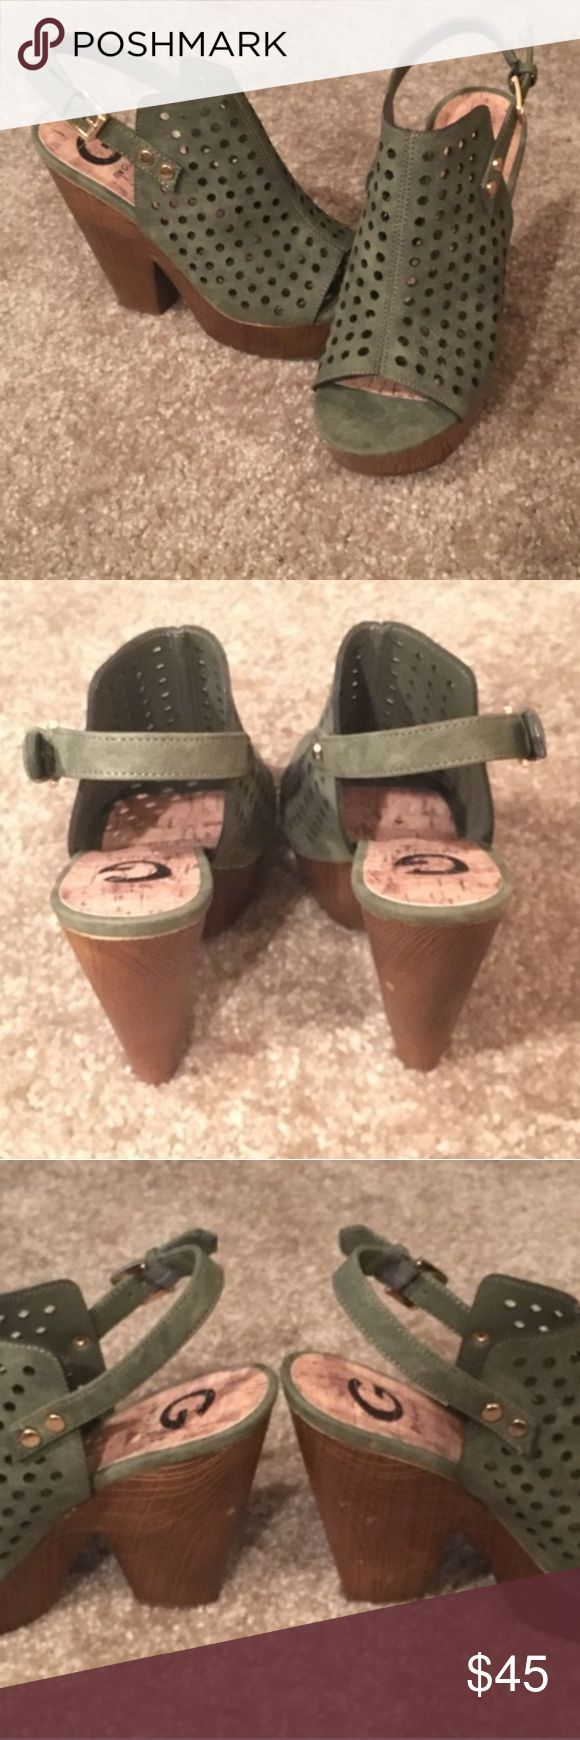 Brand new wedges Leather olive green wedges with strap. Wood like heel. Guess Shoes Wedges